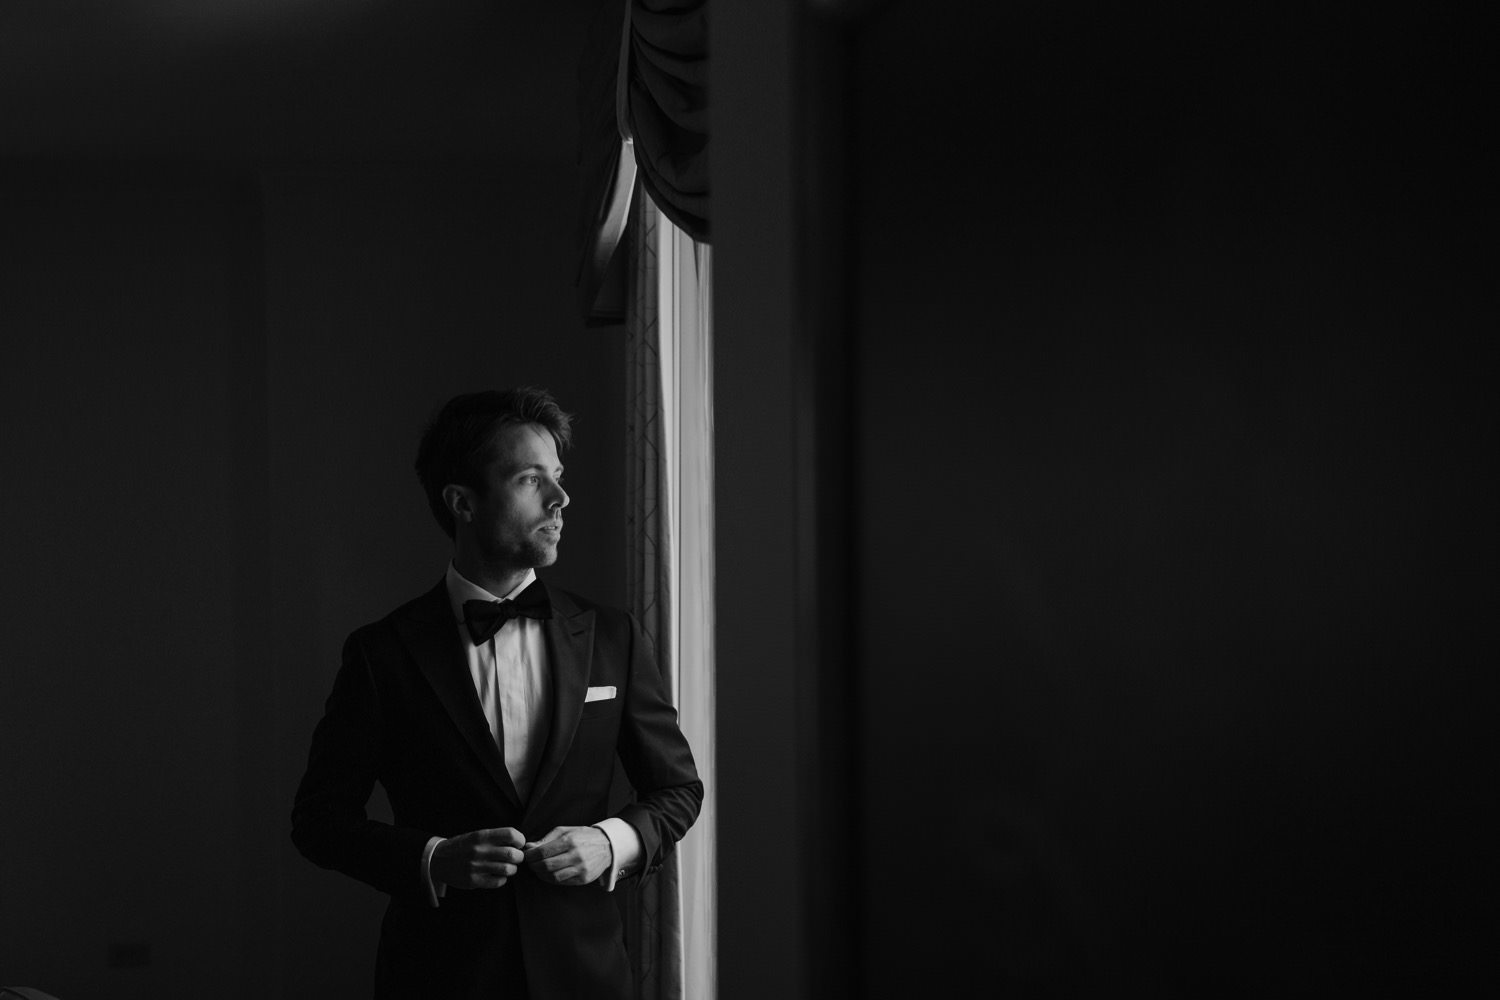 The groom getting ready on the wedding day in Palmer House